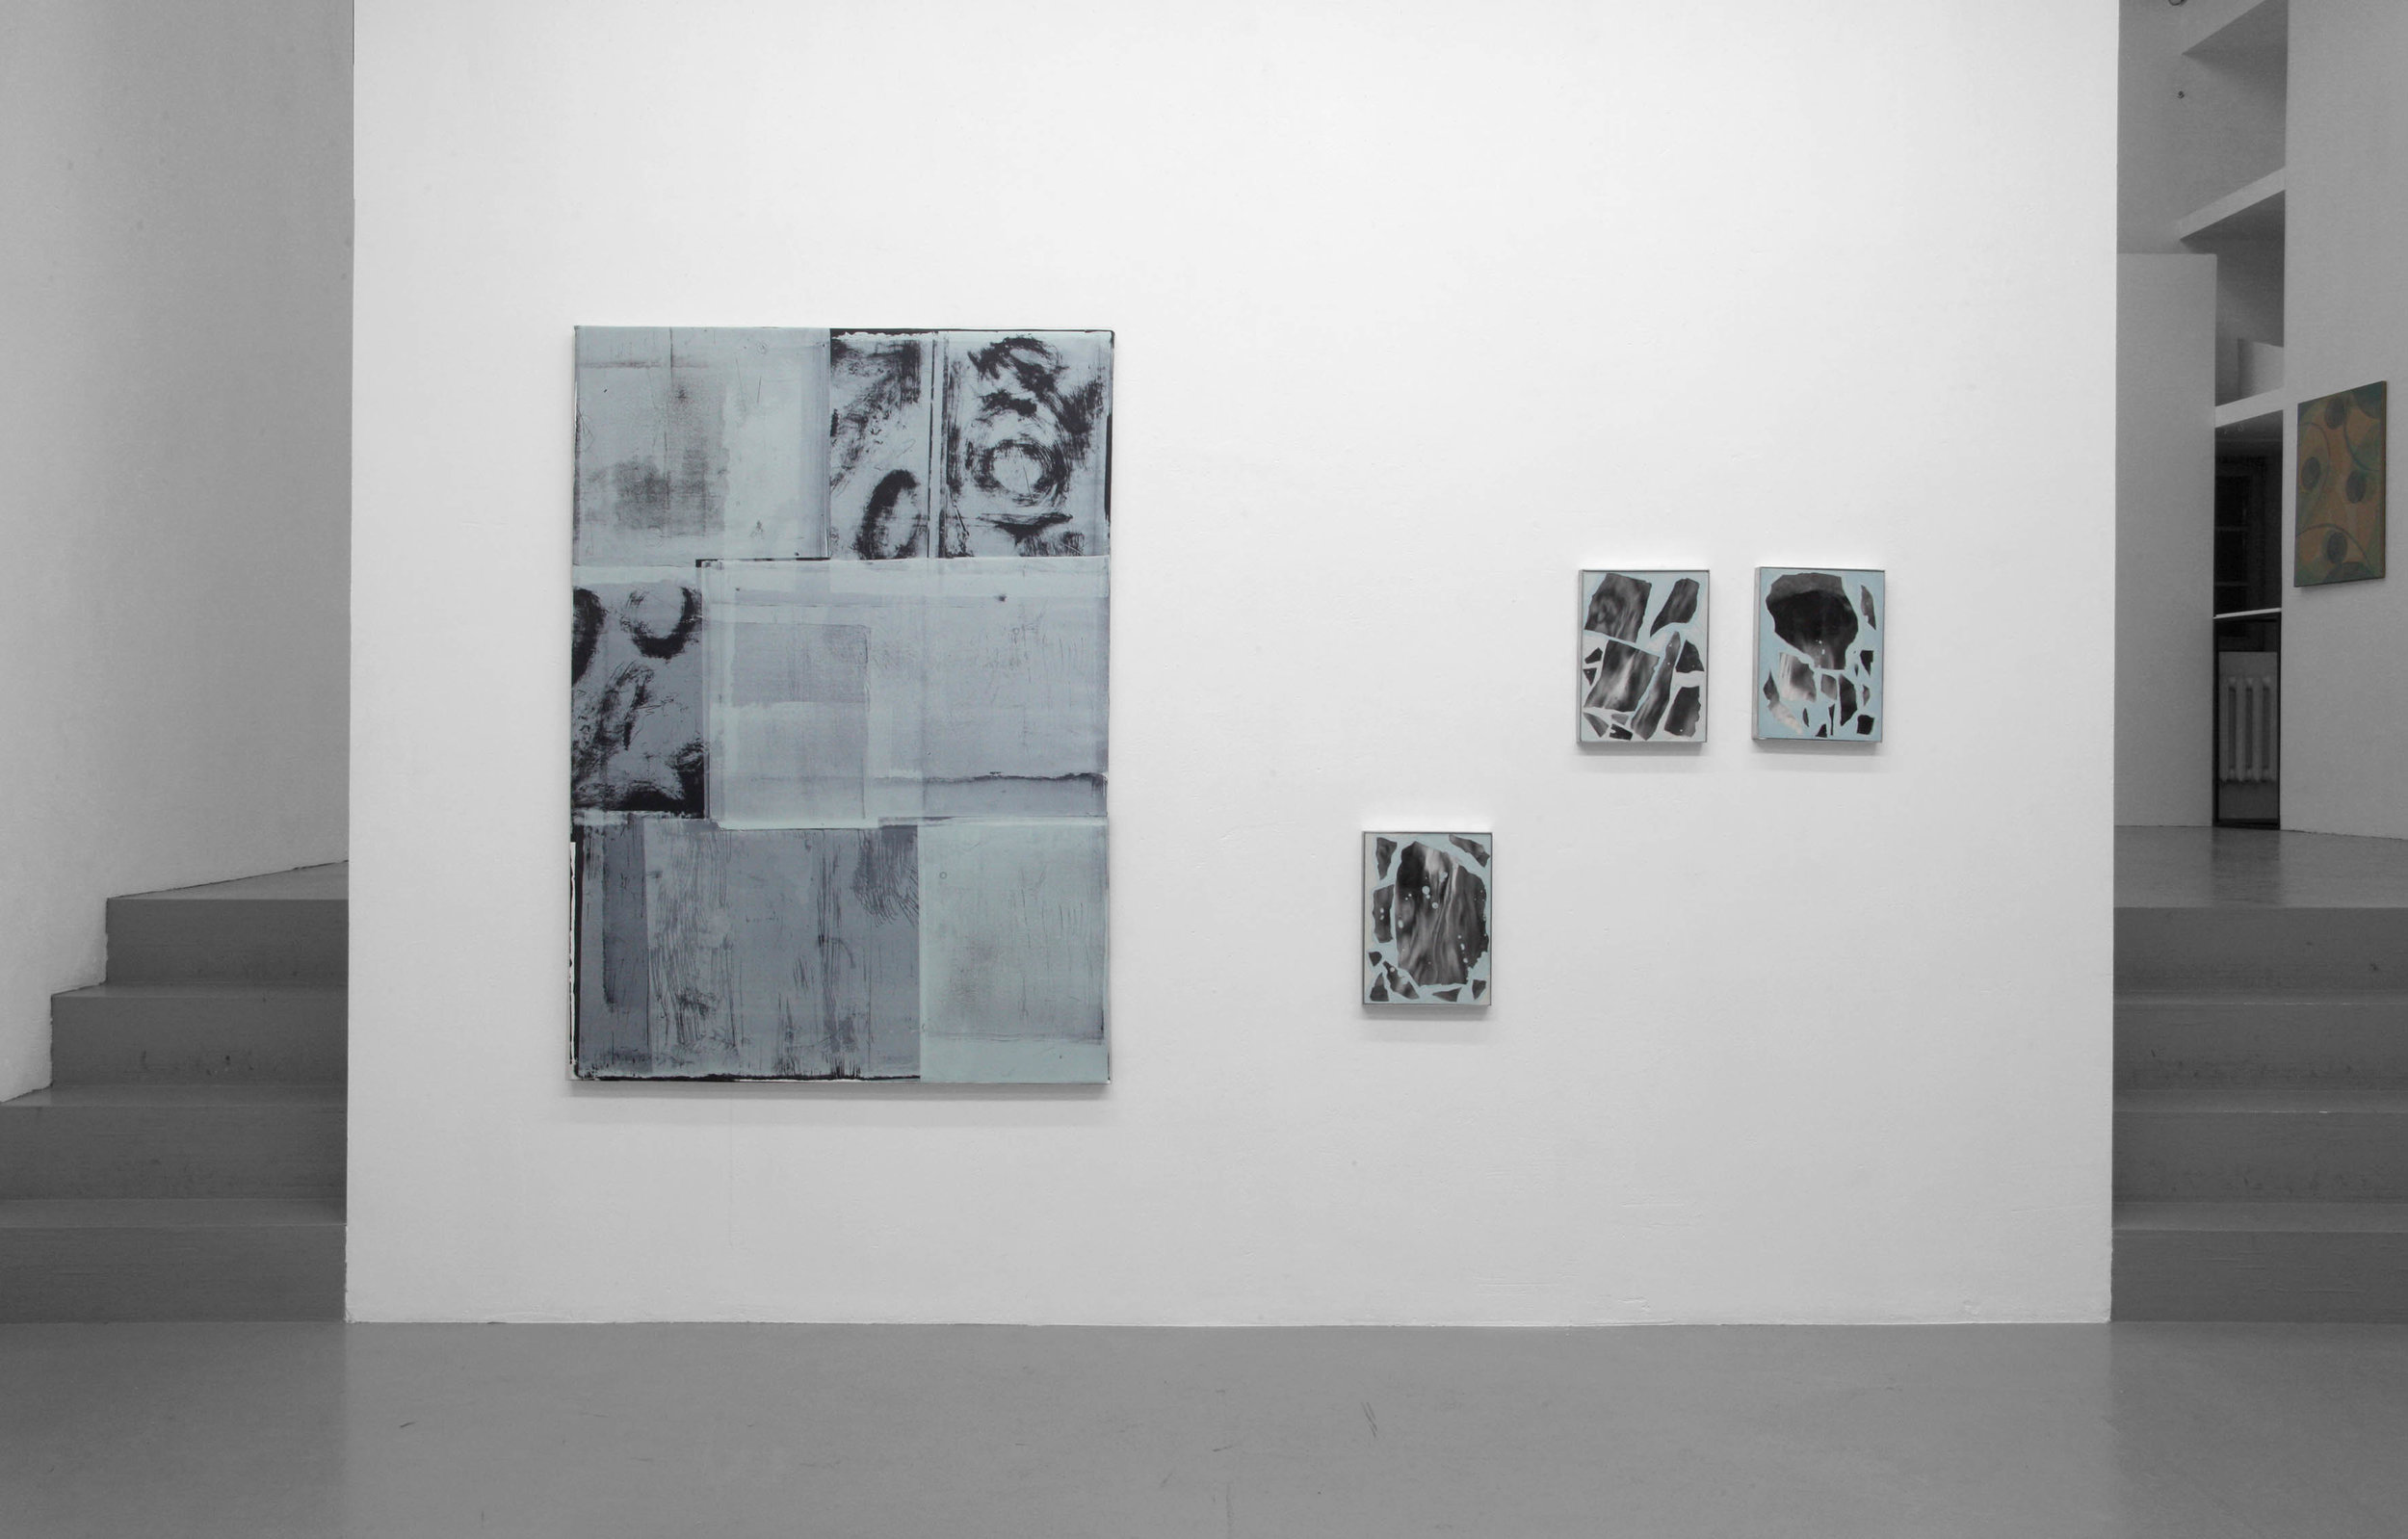 Blue Seventeen, 2017 installation view with Olga Grotova